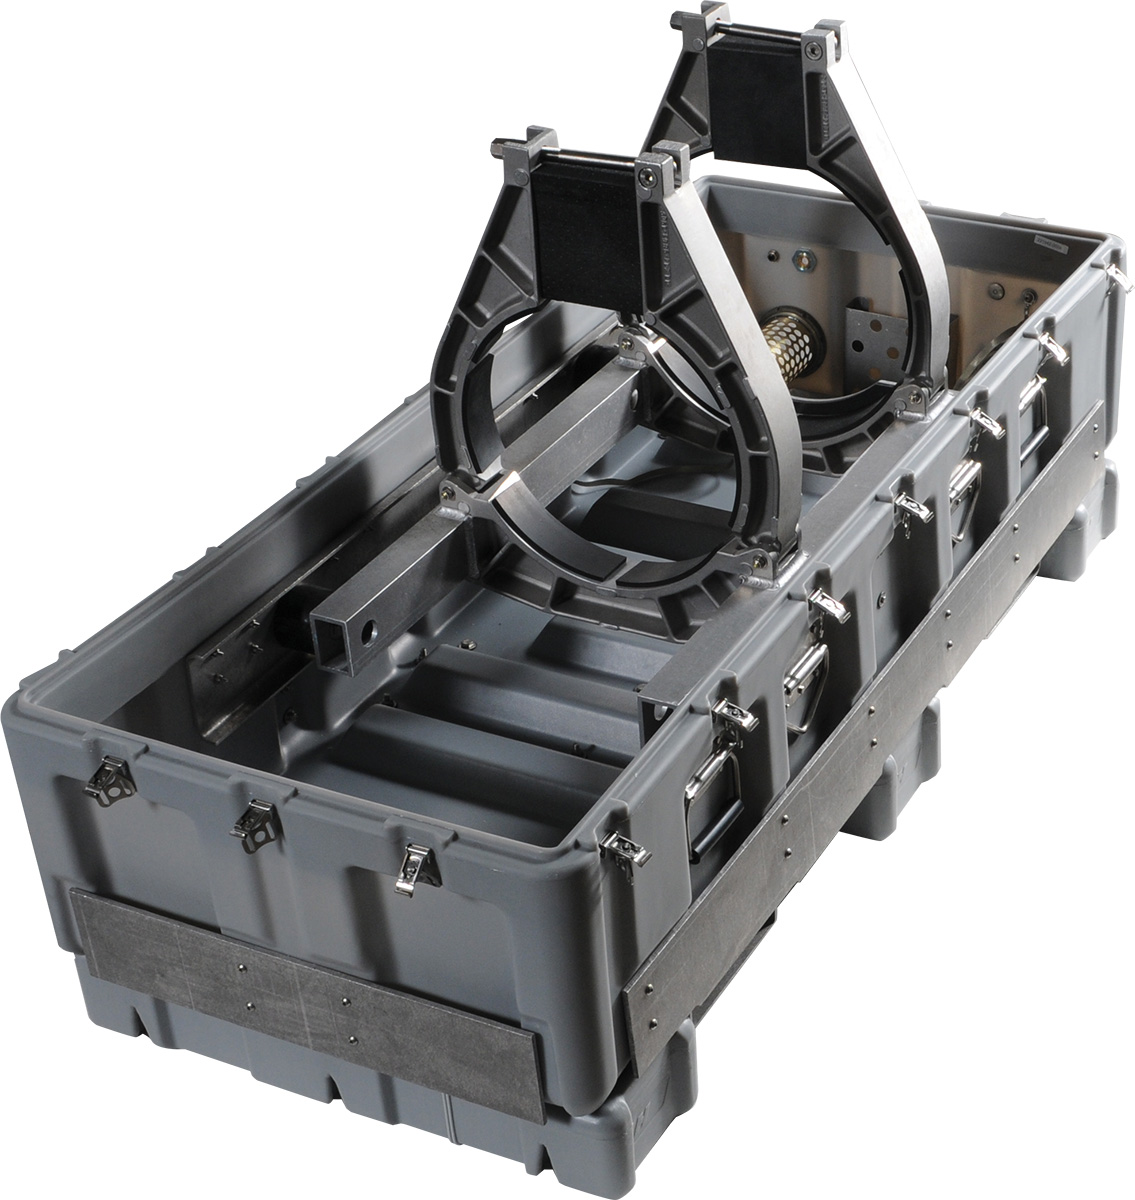 pelican professional blog custom military weapon cases